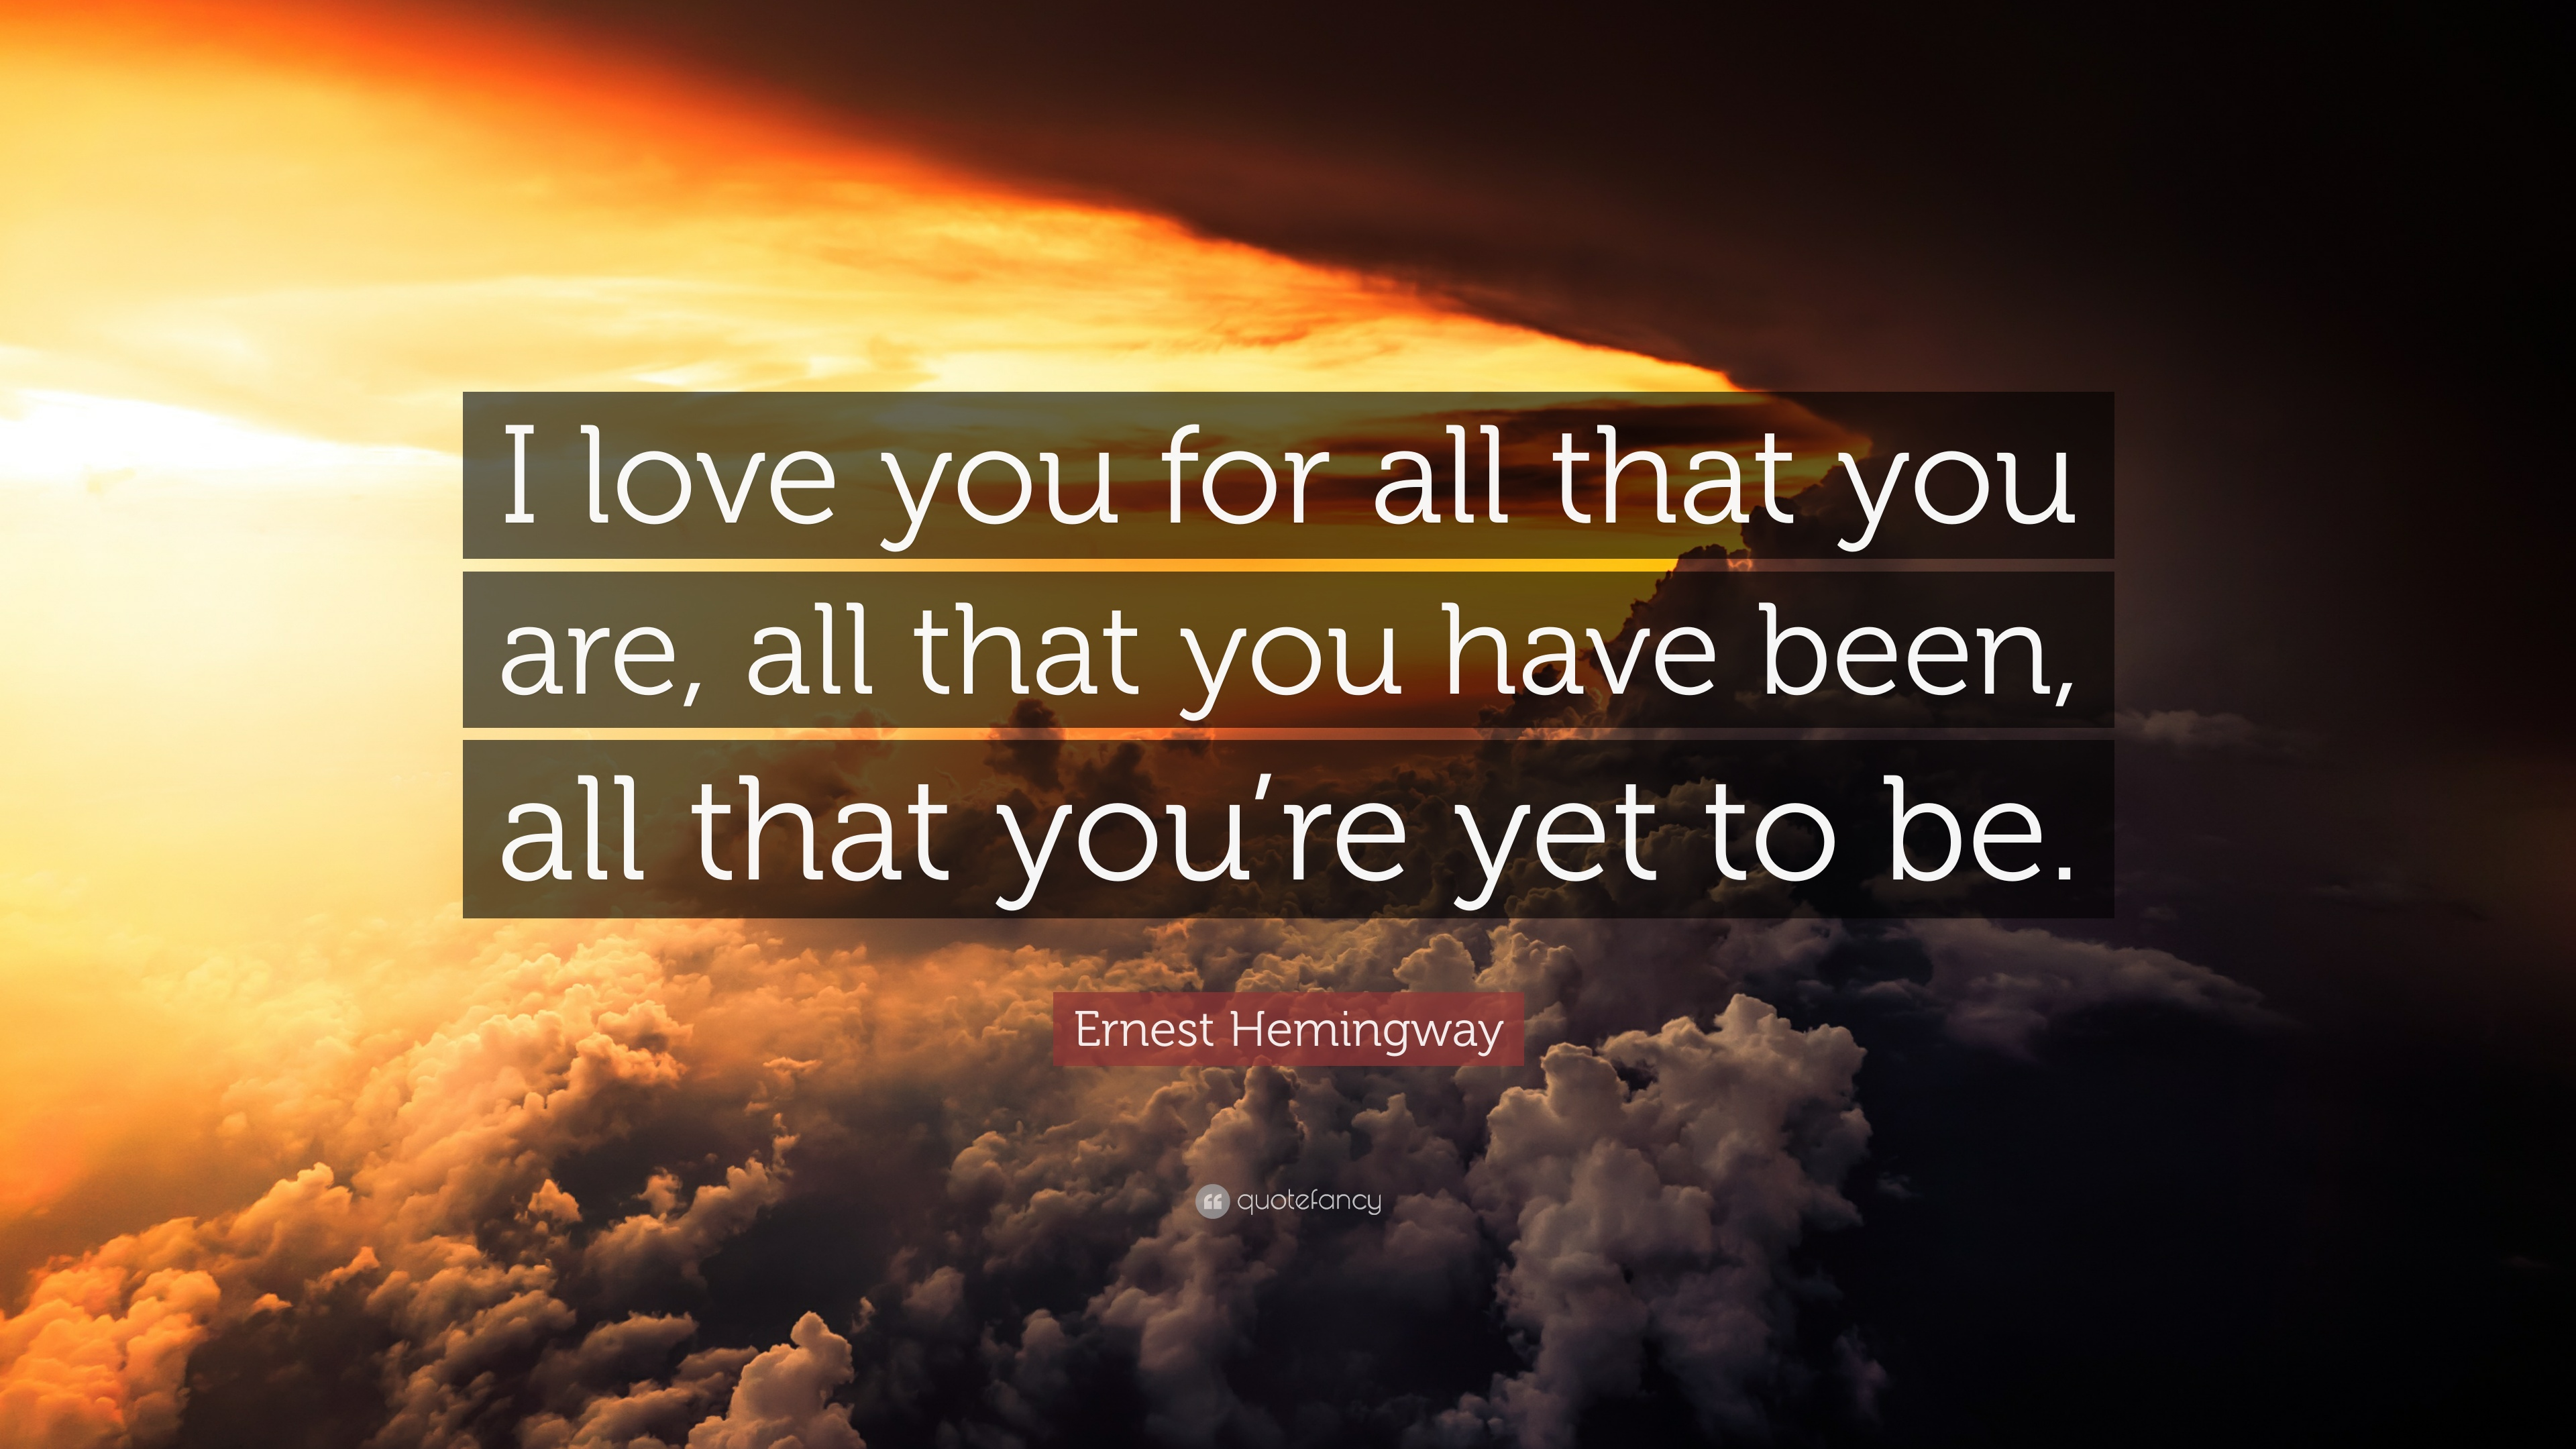 Ernest Hemingway Quote: I love you for all that you are